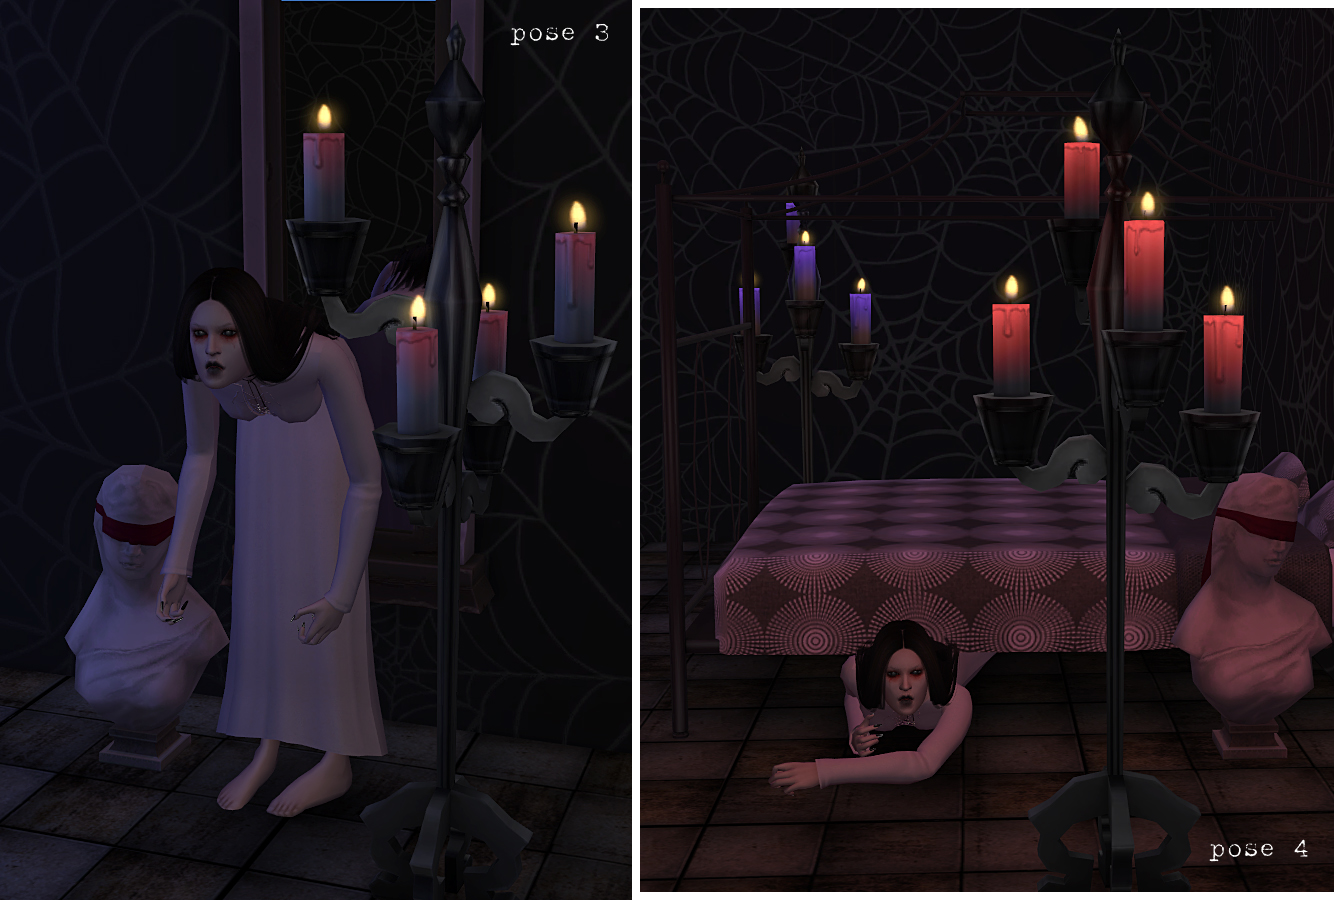 Ghost poses by Wistful Castle